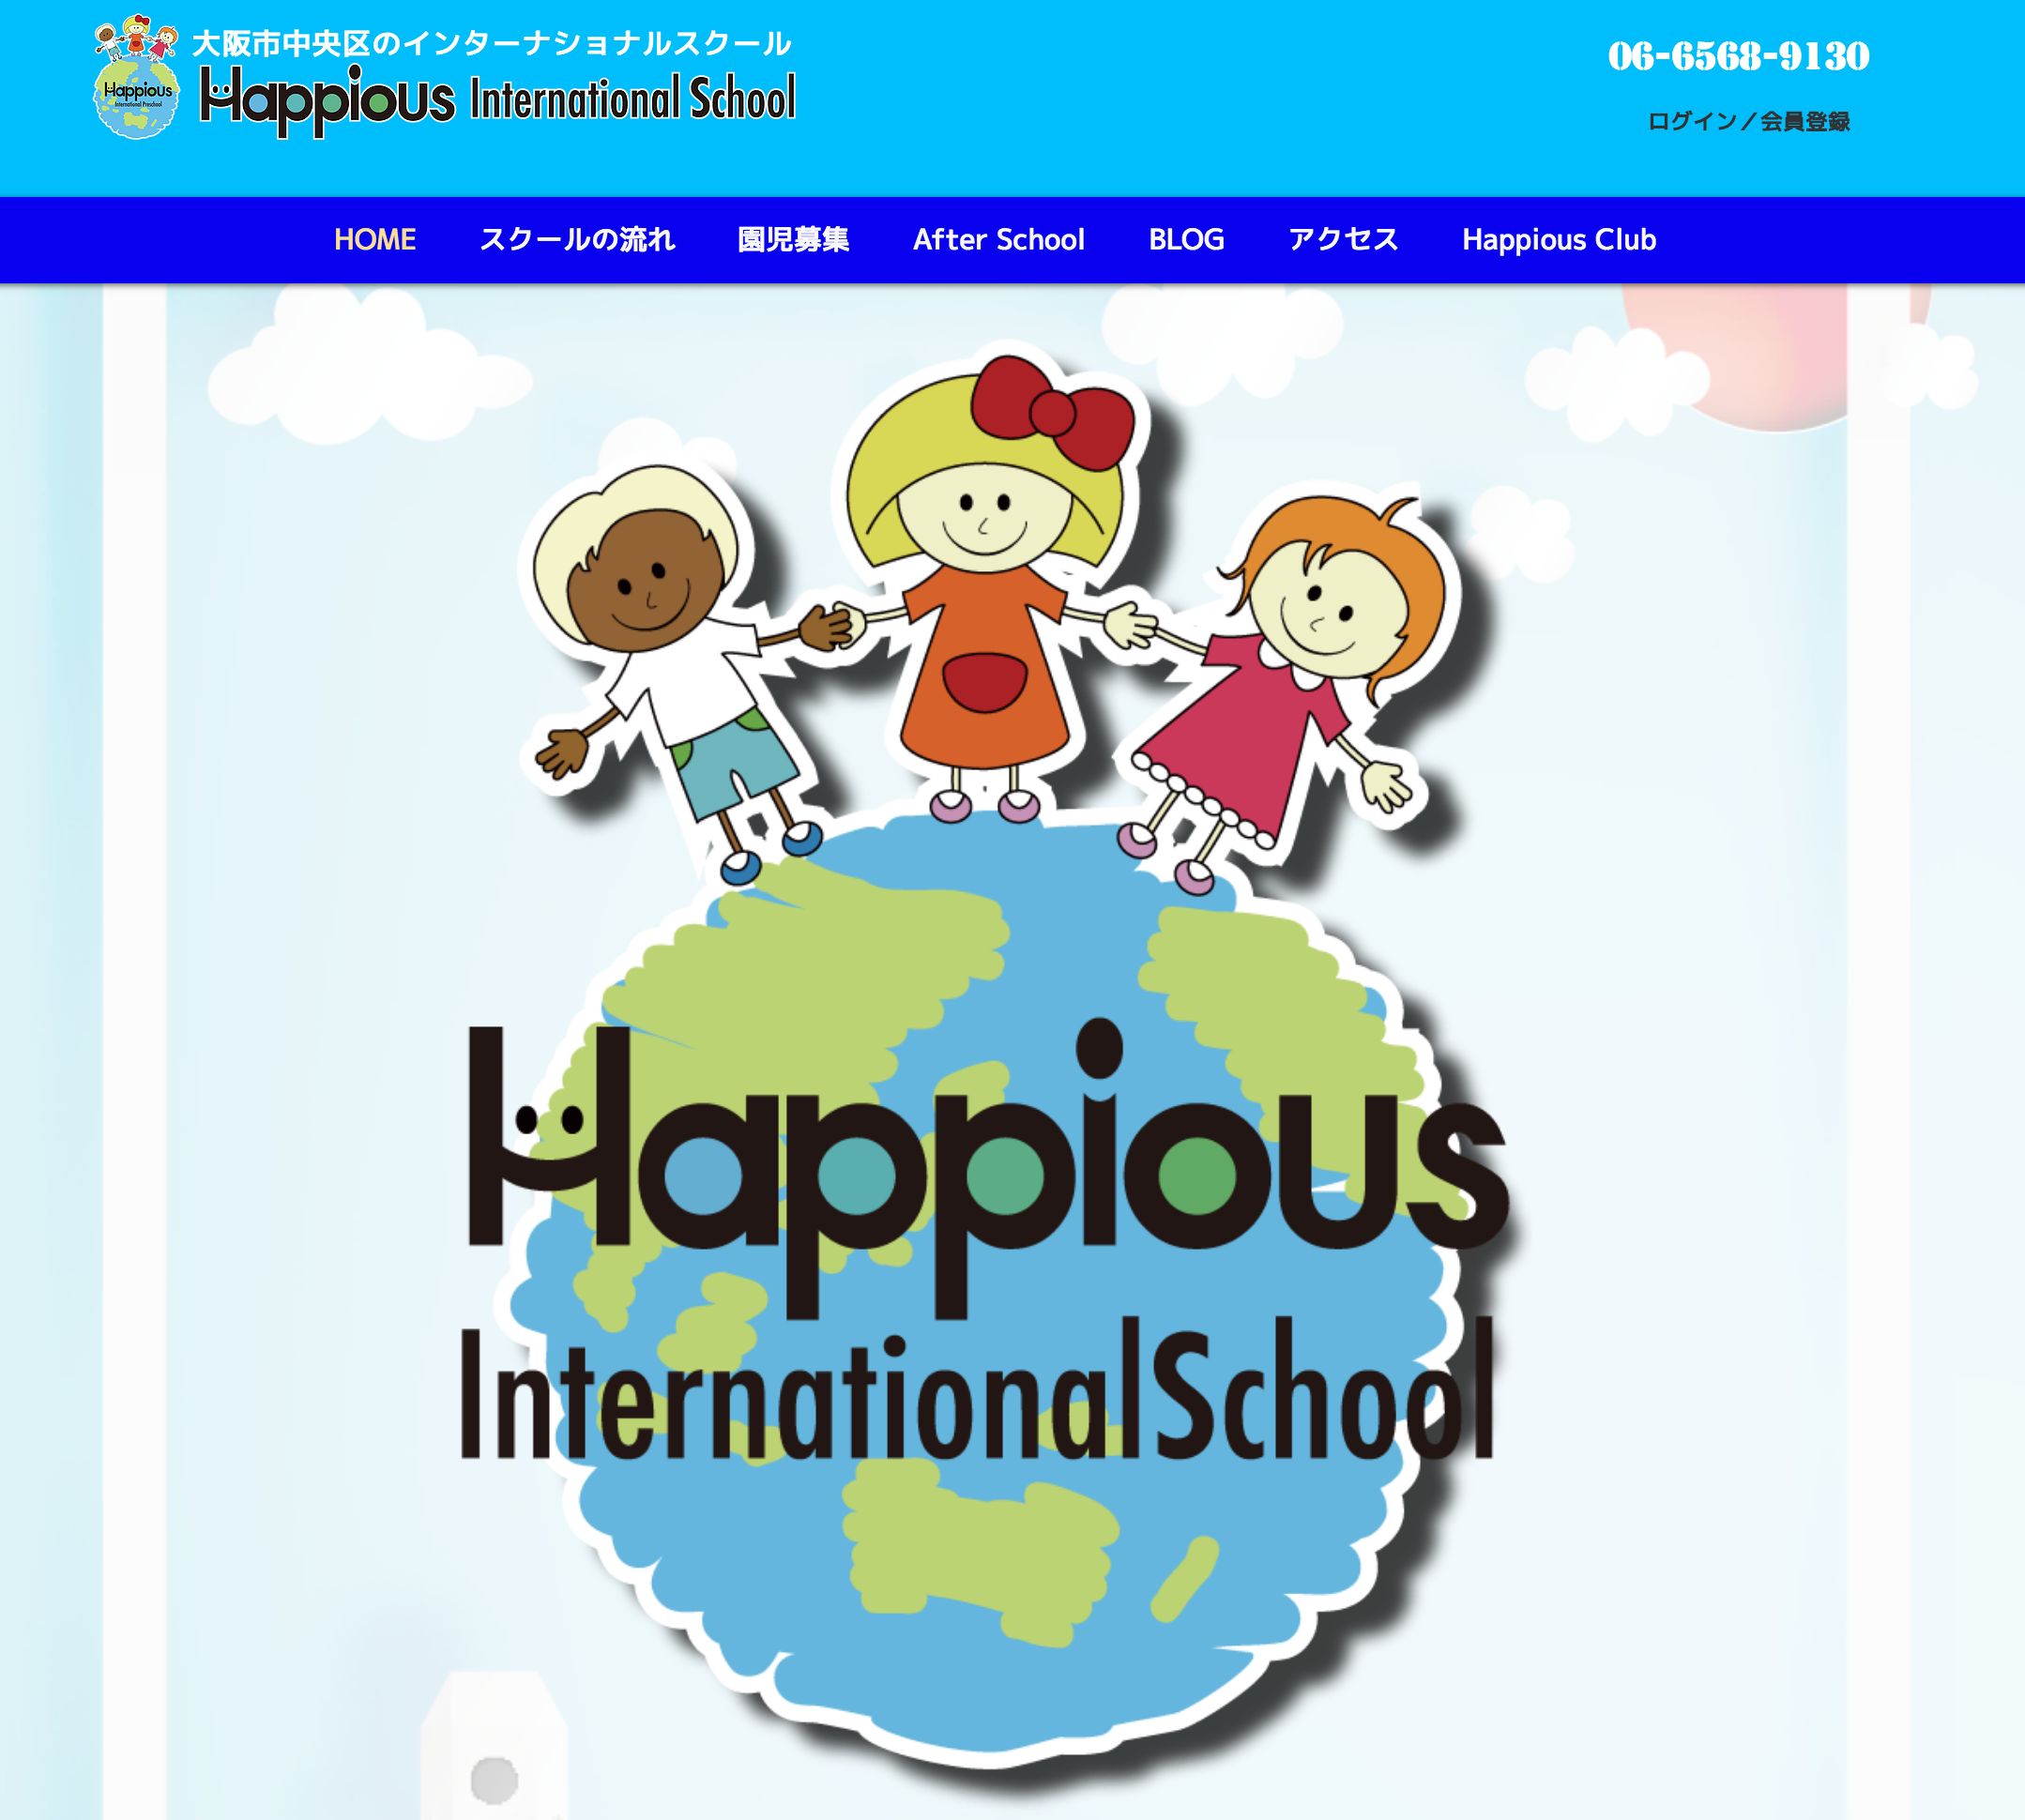 Happious International School